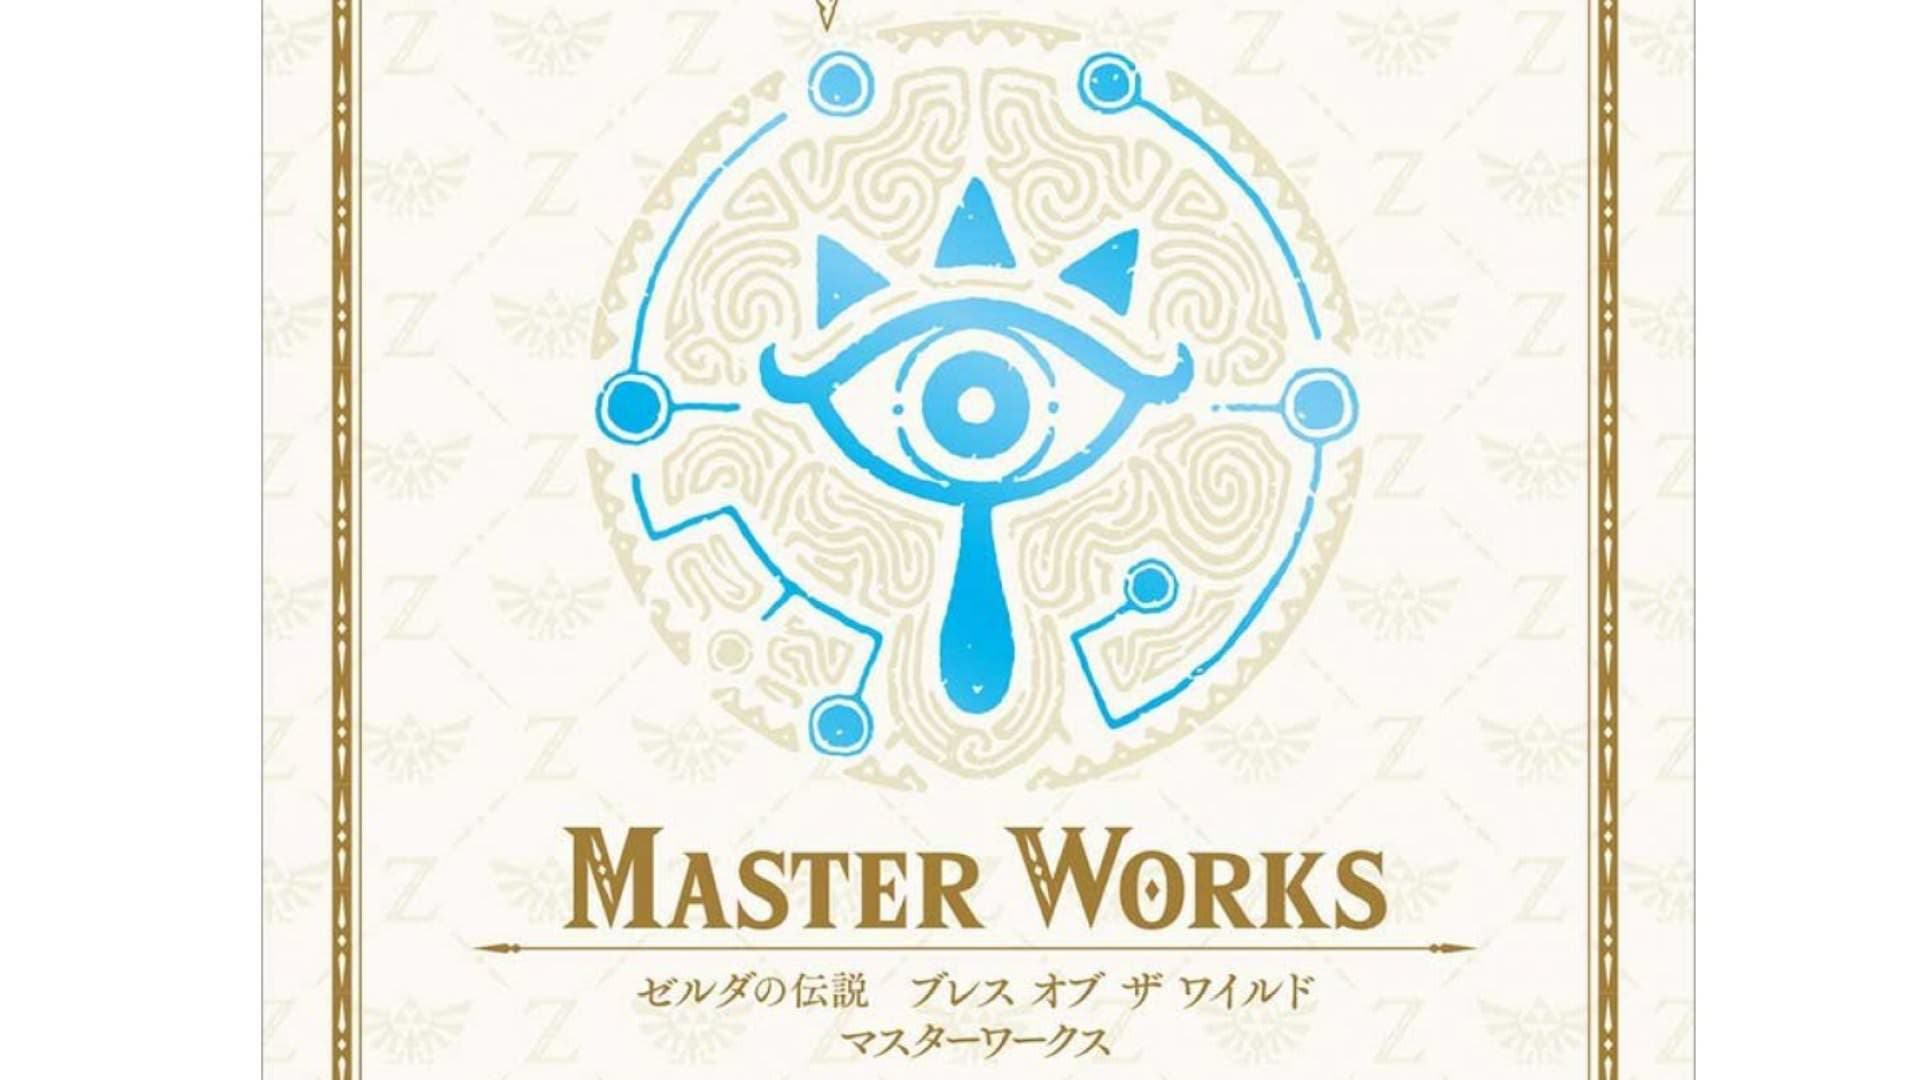 El libro Master Works de Zelda: Breath of the Wild llegará a Occidente